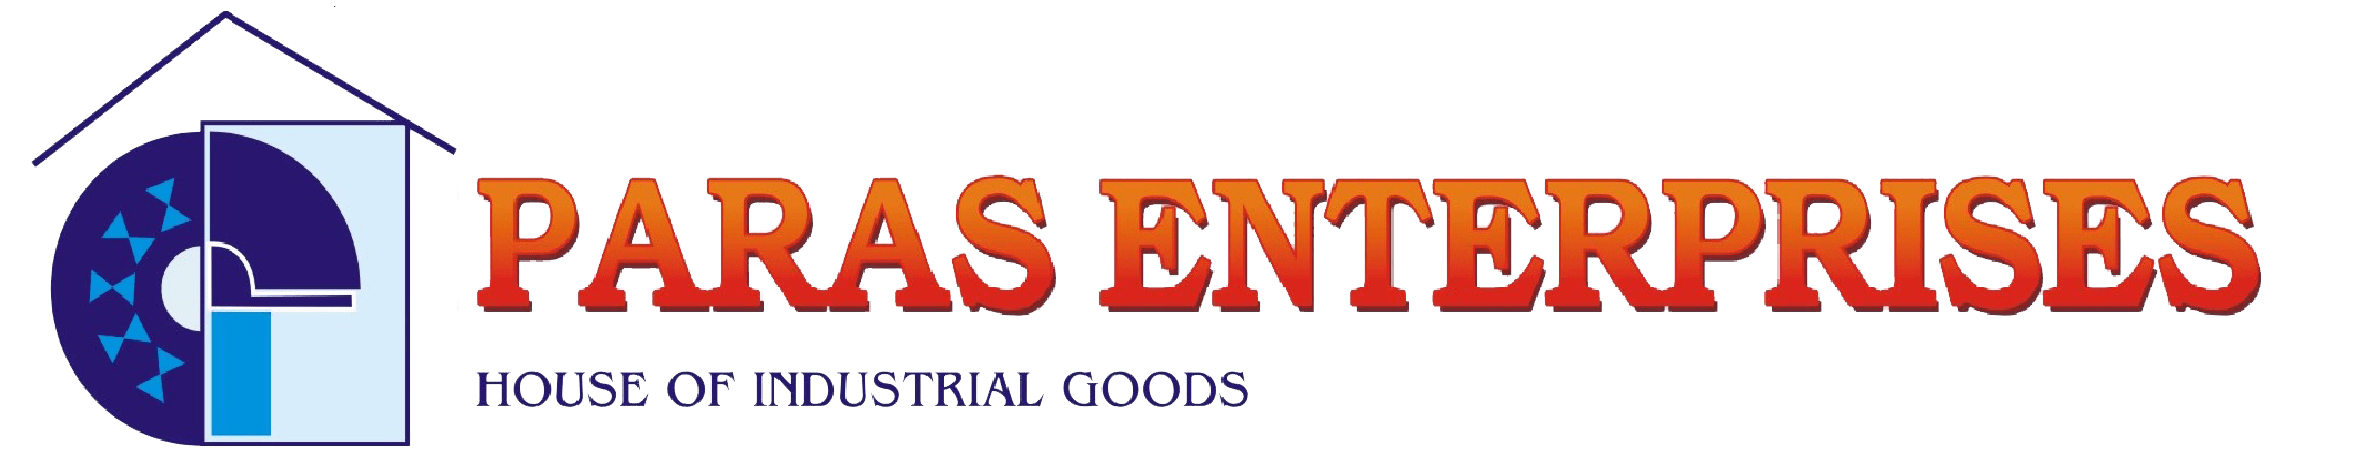 Pars Enterprises